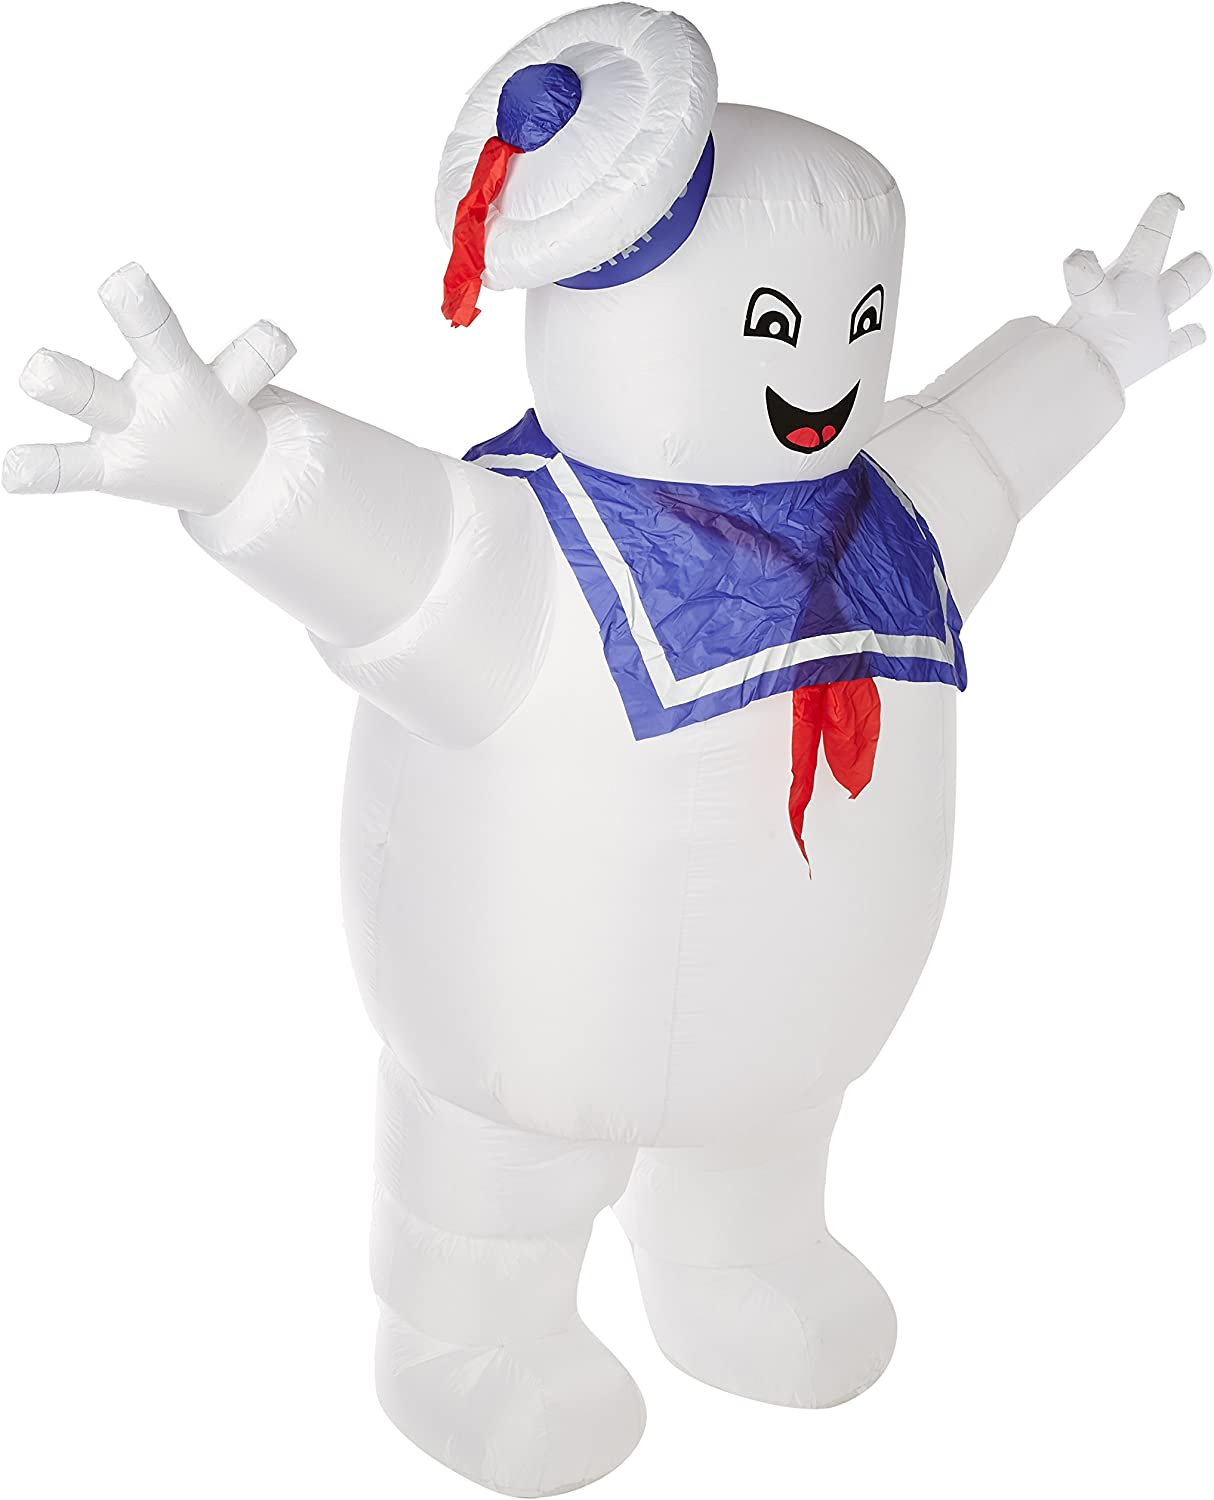 Stay Puft Marshmallow Man Costume Kids Inflatable Ghostbusters Halloween